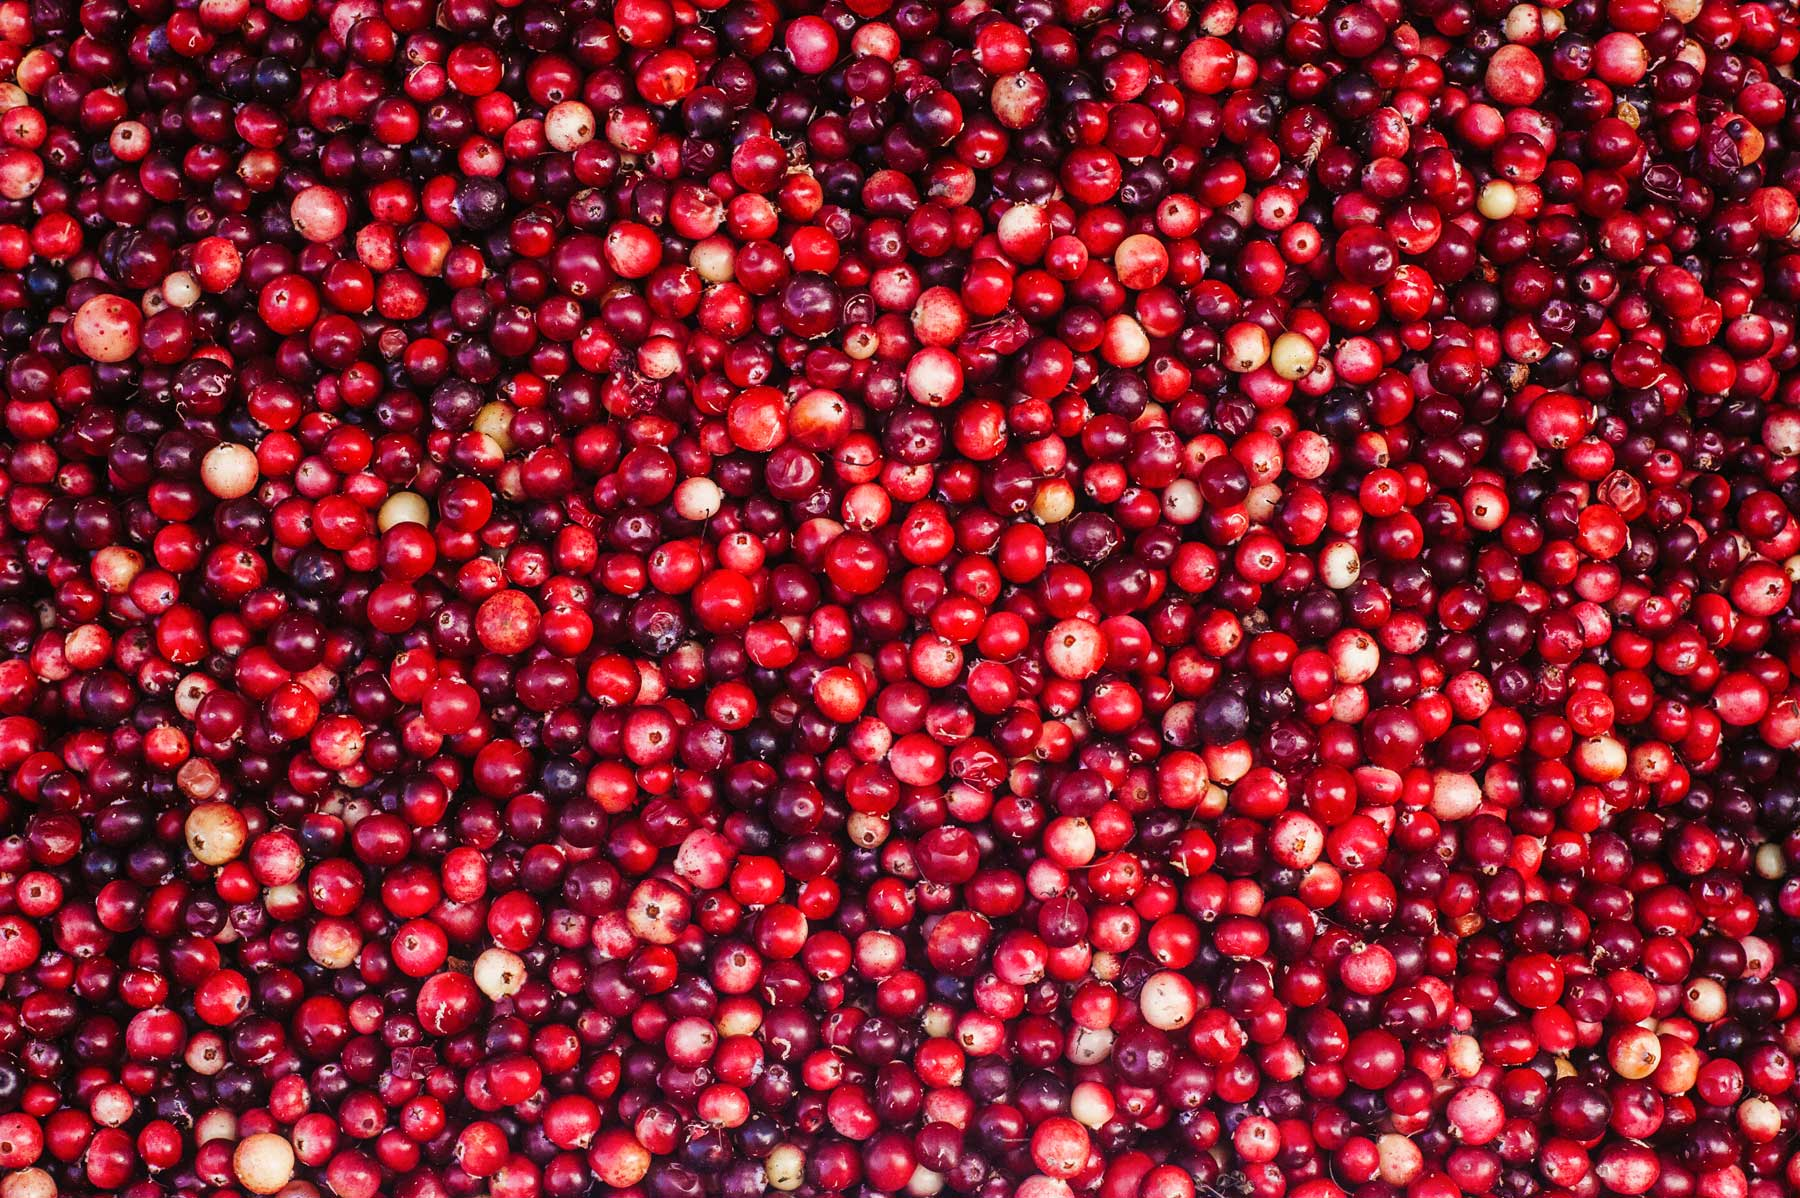 A sea of bright, red cranberries.